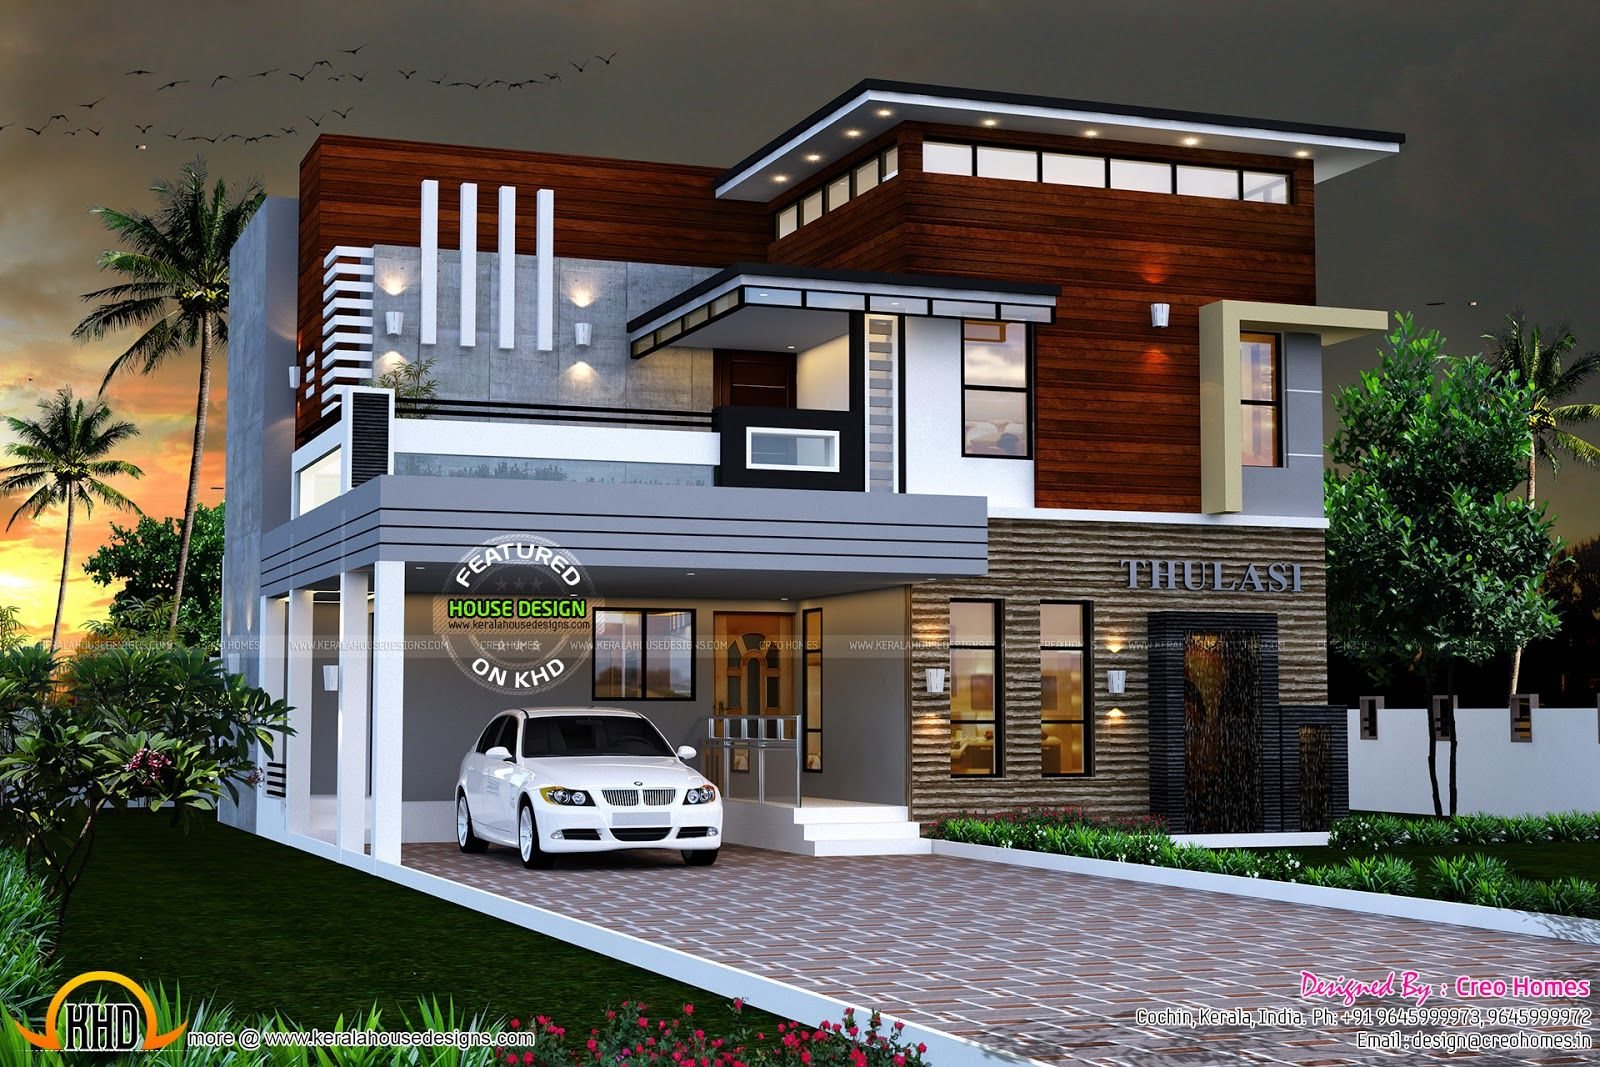 Eterior design modern small house architecture building for House building design ideas